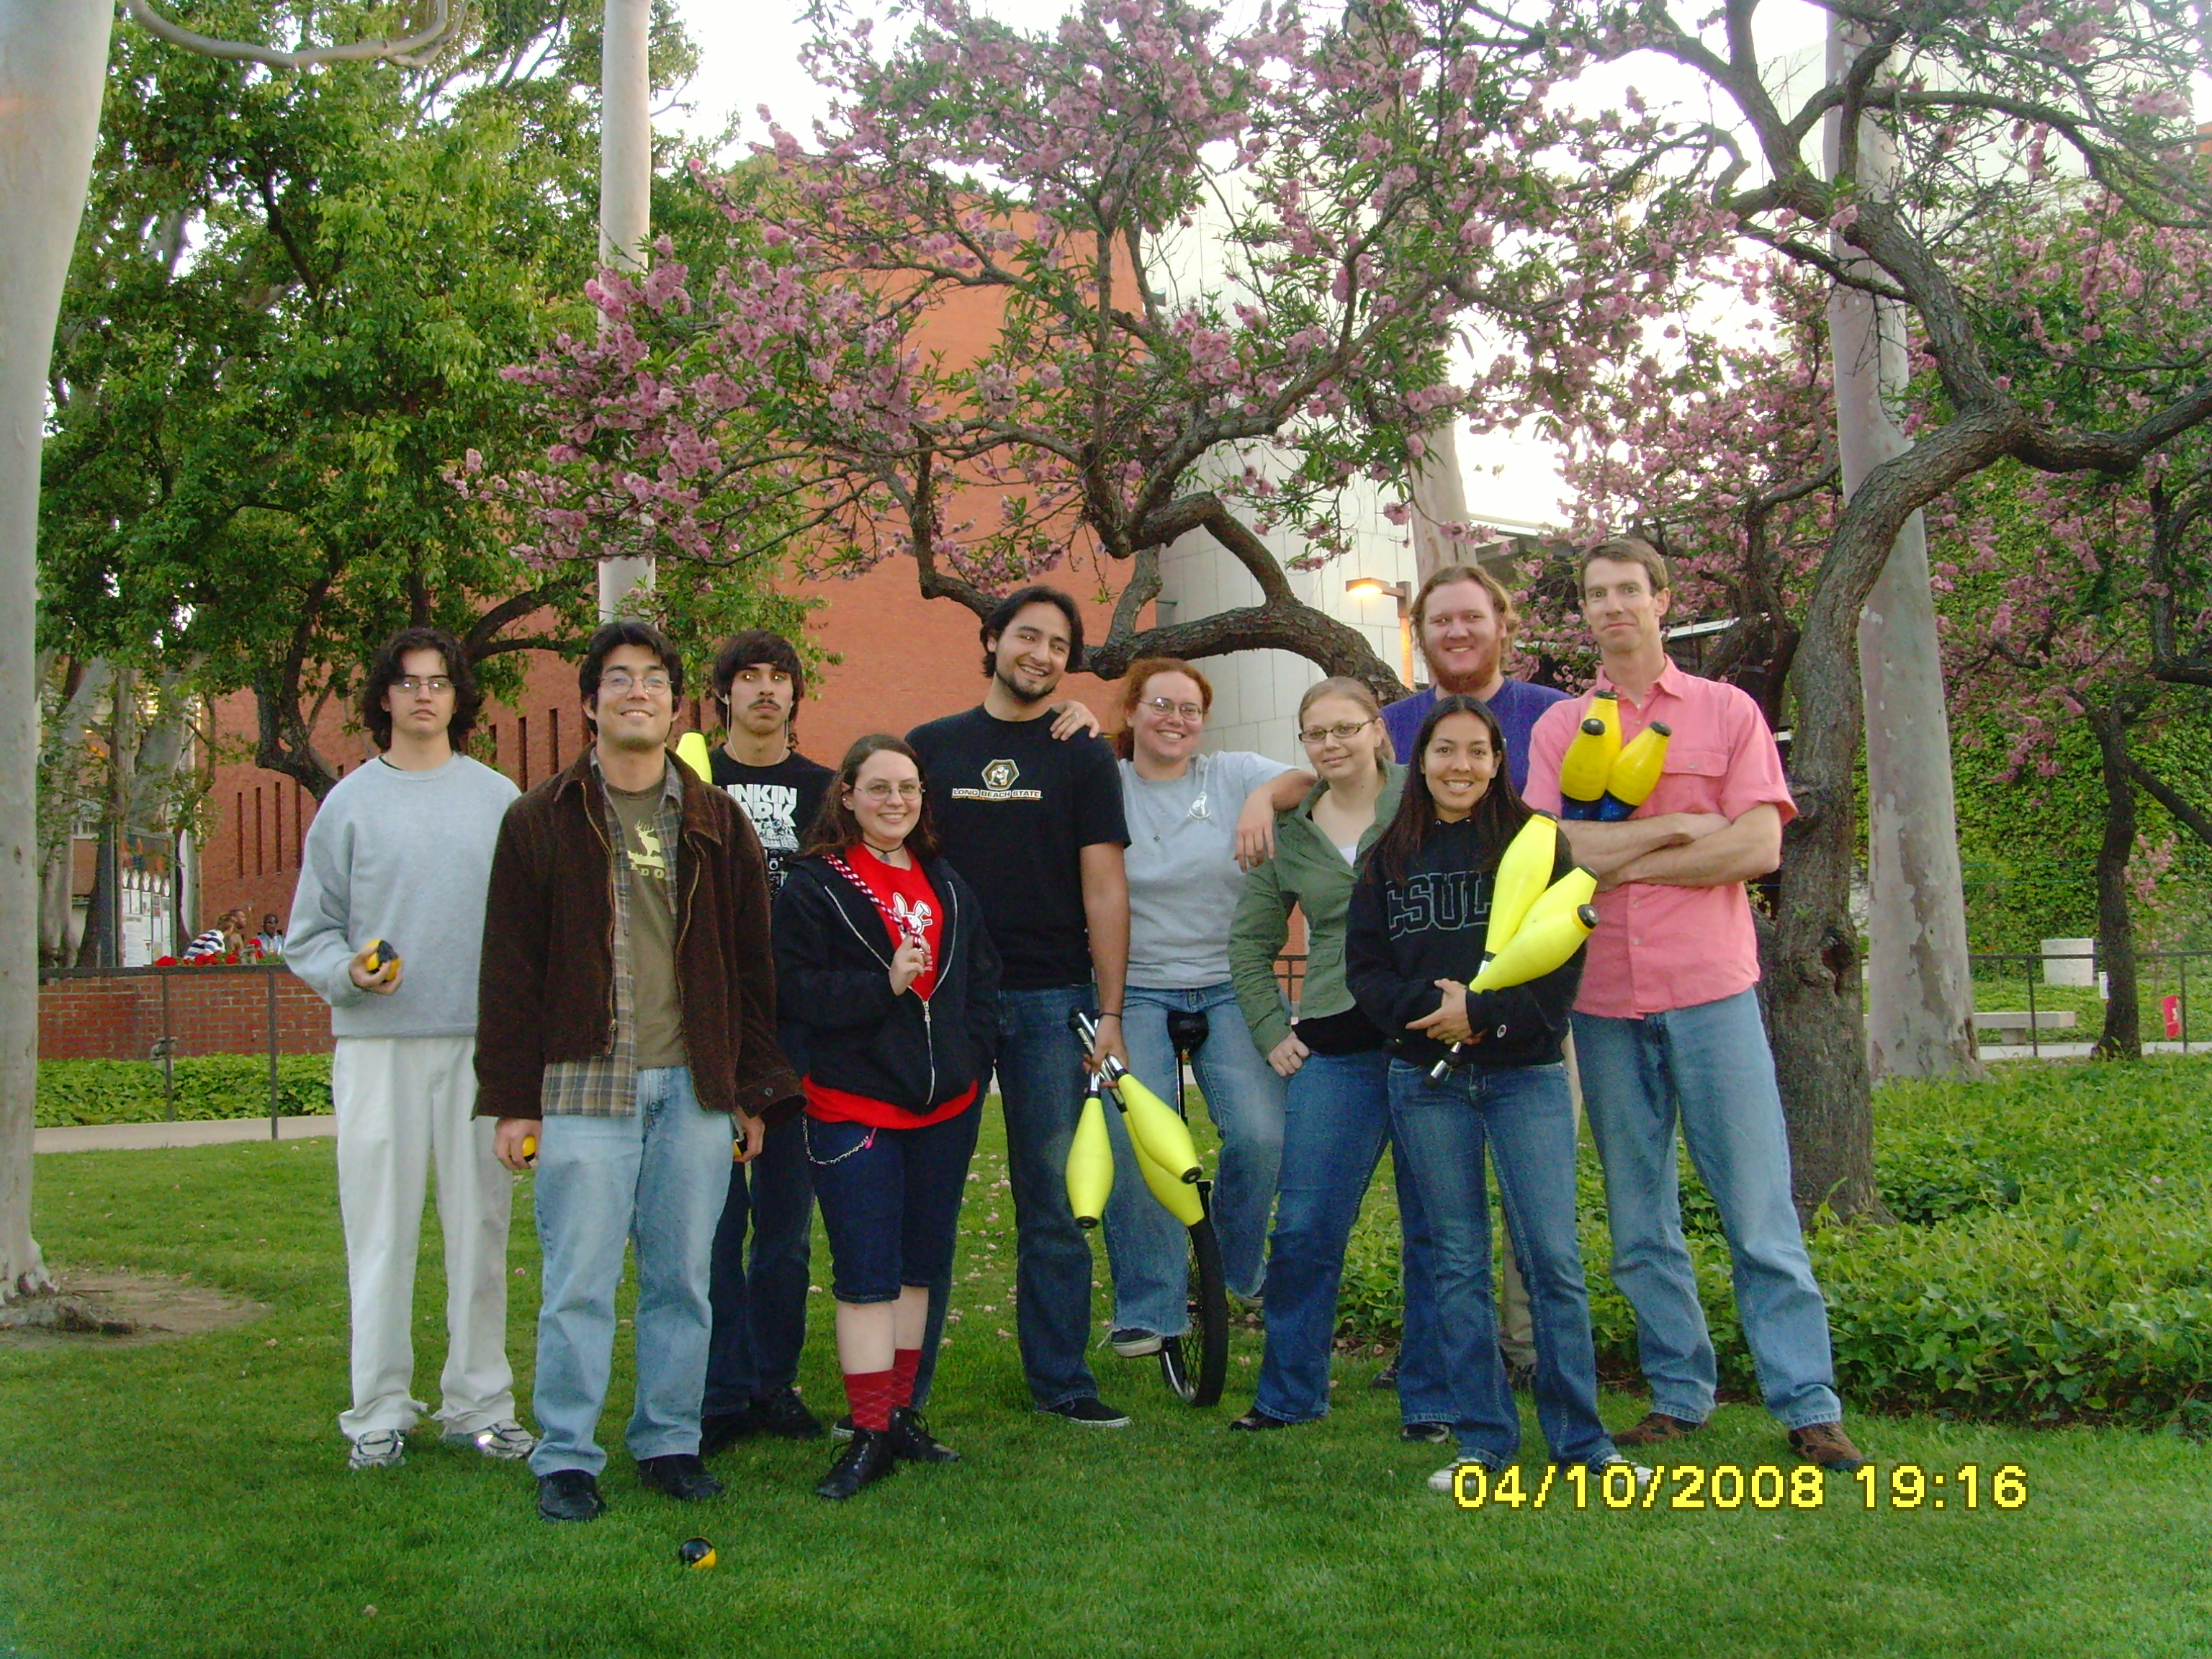 How To Calculate Gpa Csulb By Anurag Anand Csulb Beach Balls Juggling Club